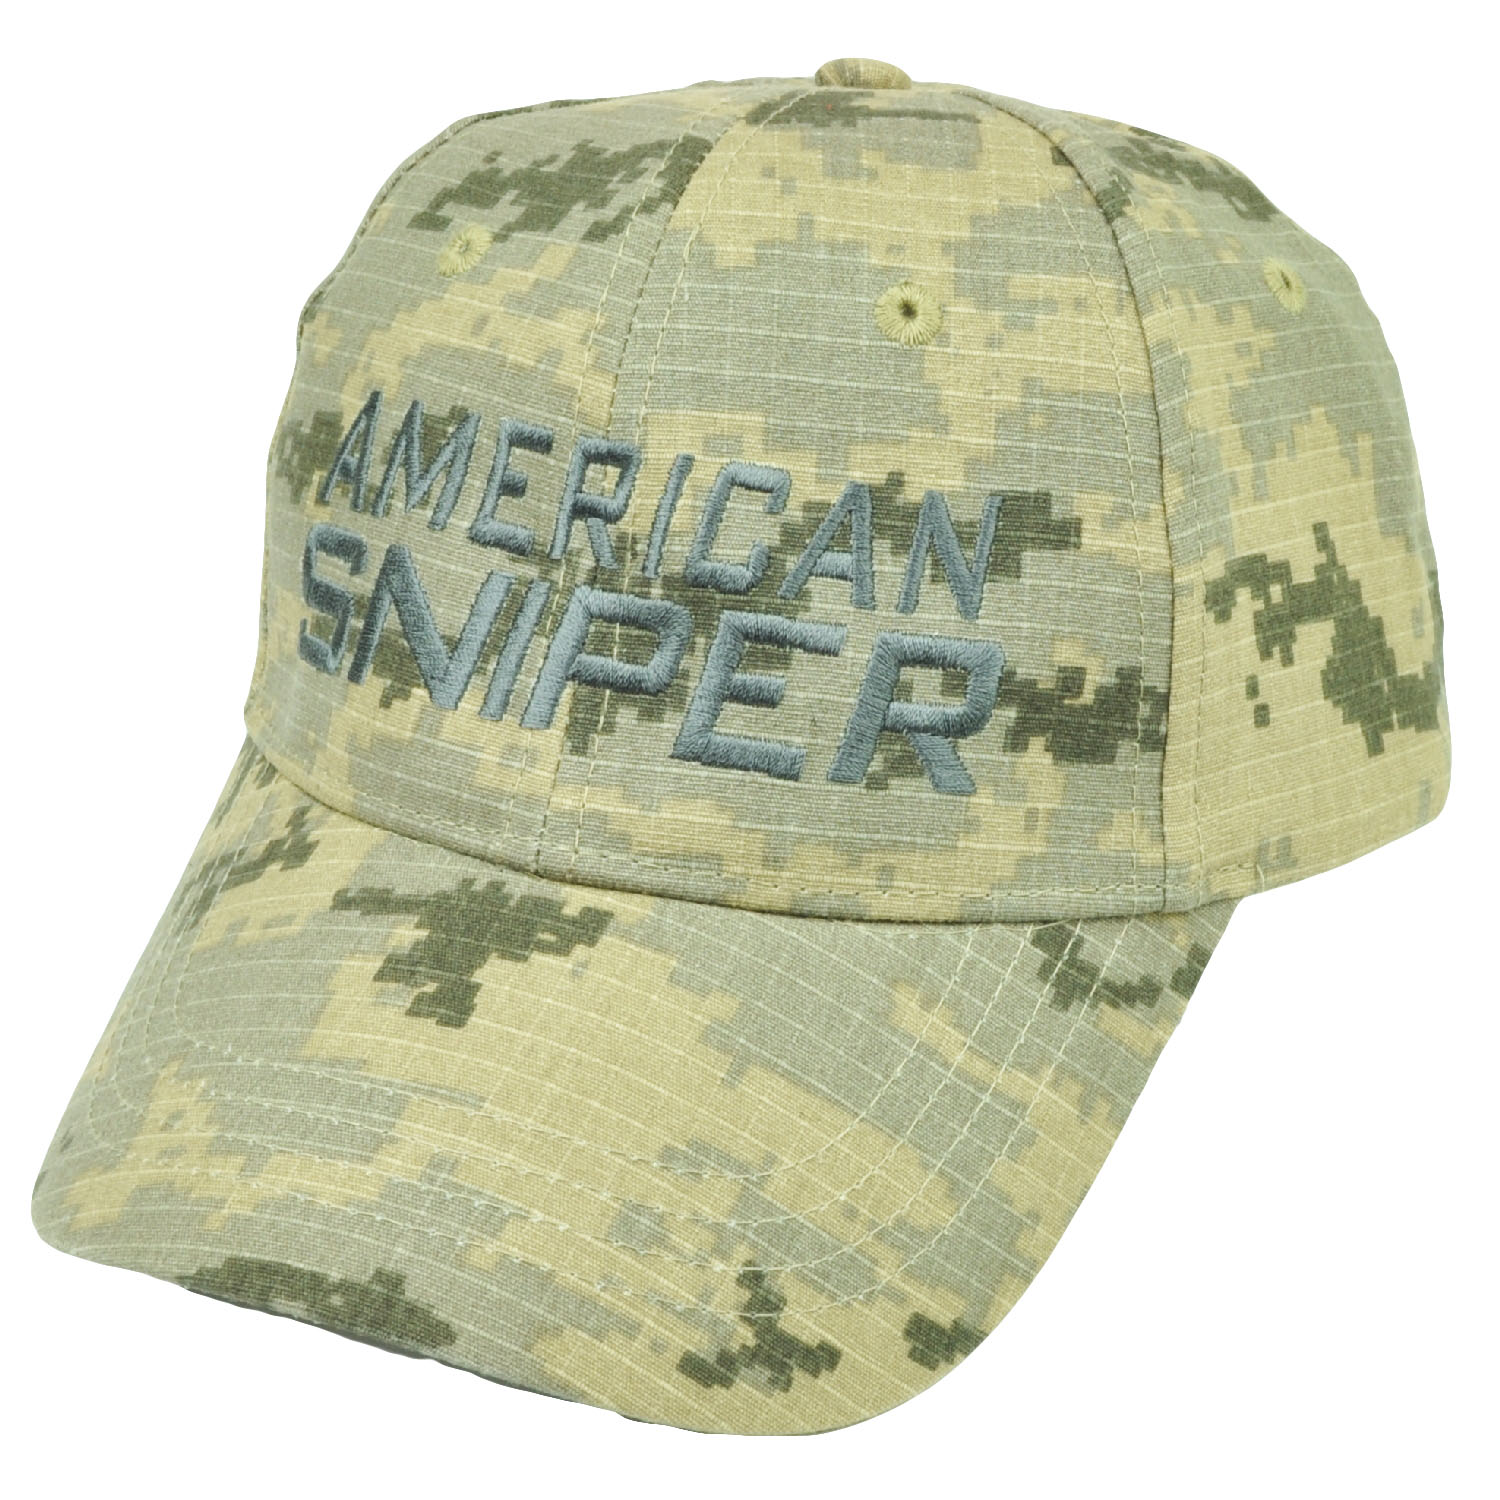 8f977af5d Details about American Sniper Digital Camouflage Camo Hat Cap Support Kyle  Navy Seal